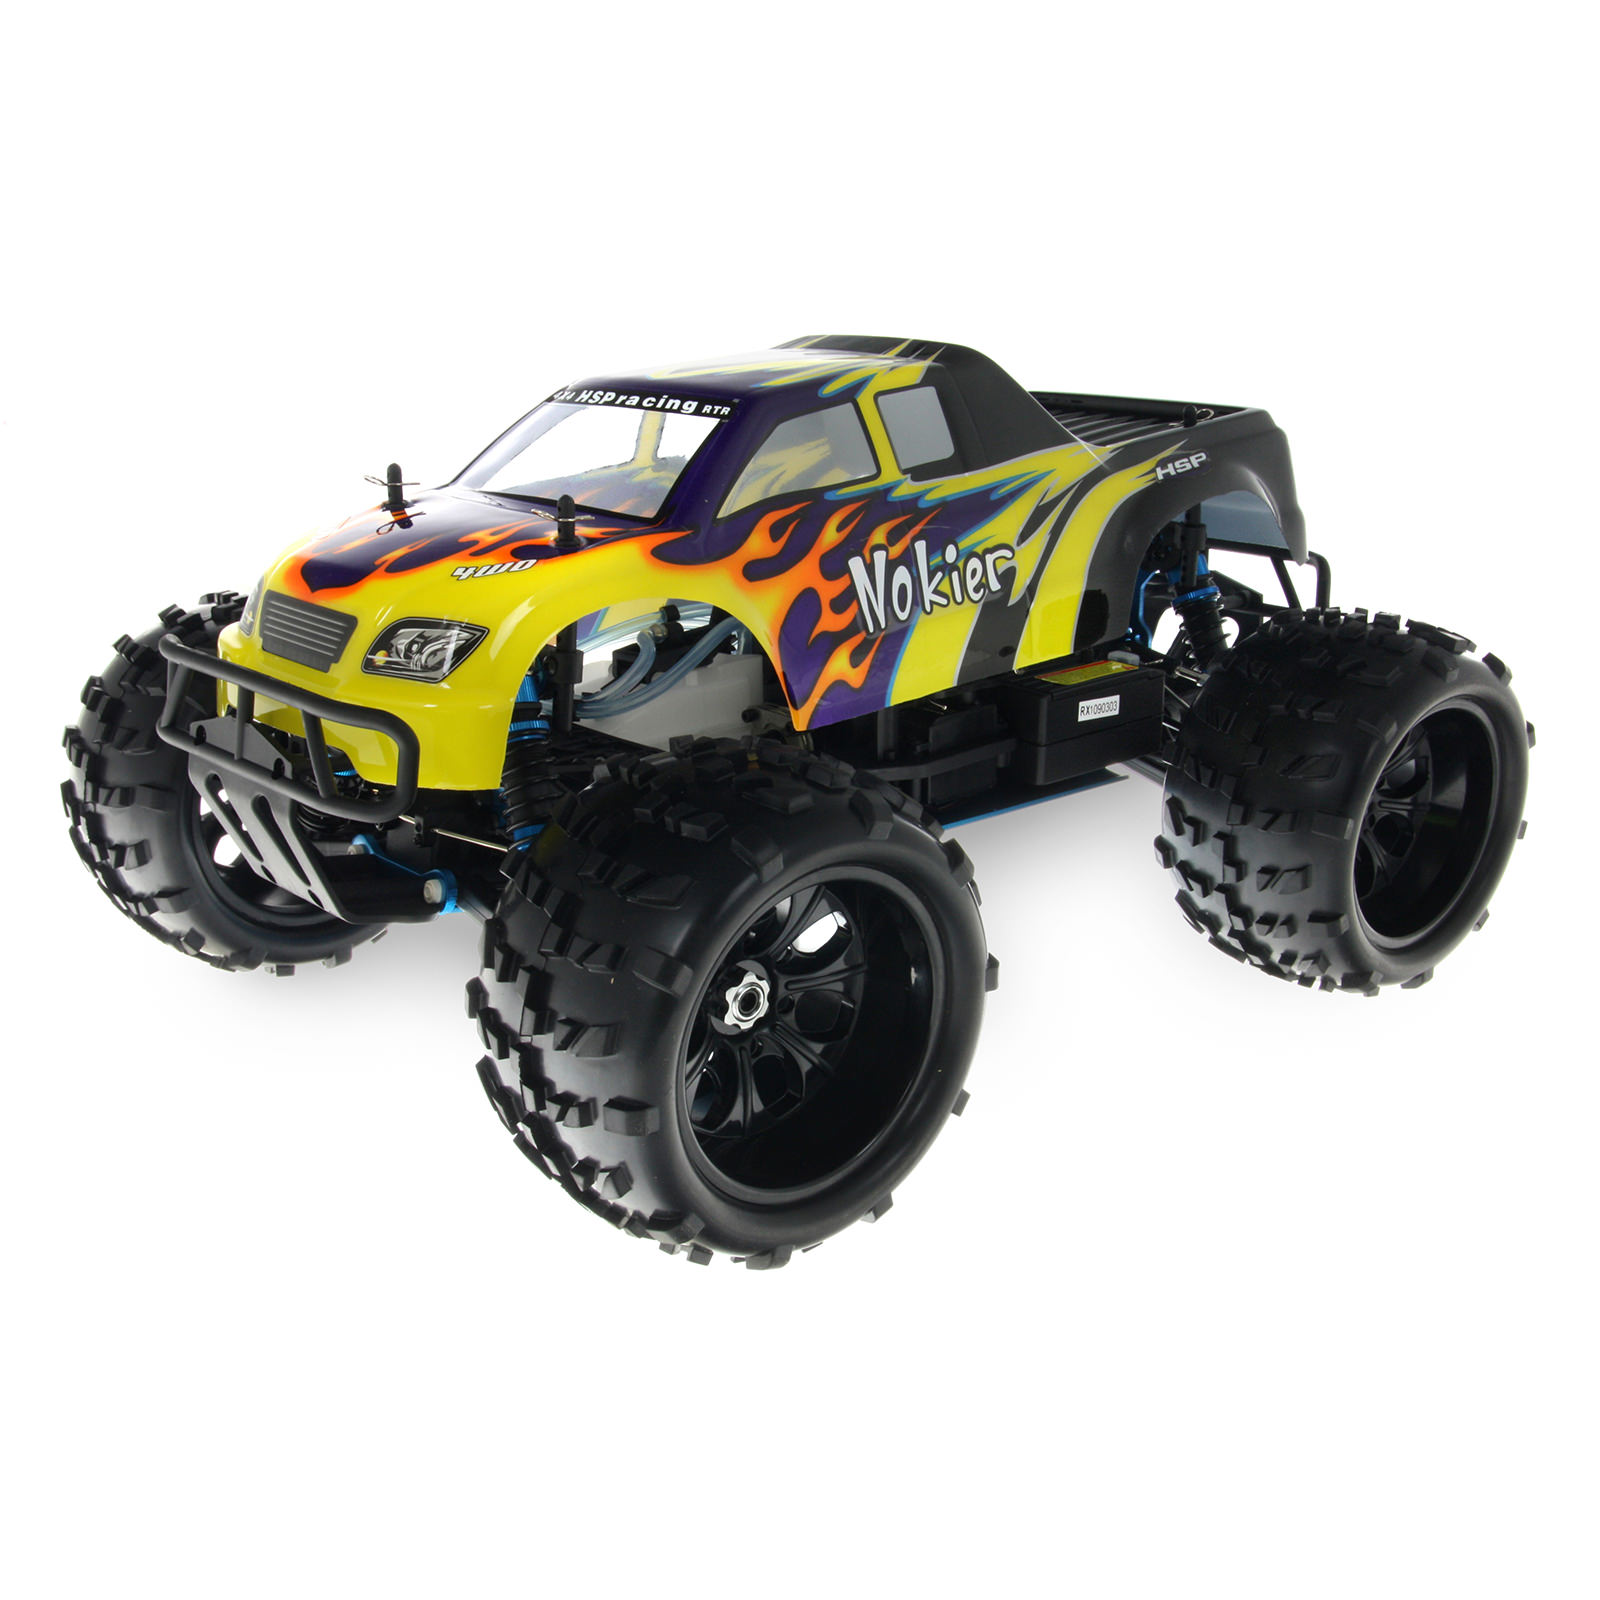 Hsp Rc Truck Nitro Gas Power Off Road Monster Truck 94188: HSP 94862-08316 Black RC Monster Truck At Hobby Warehouse